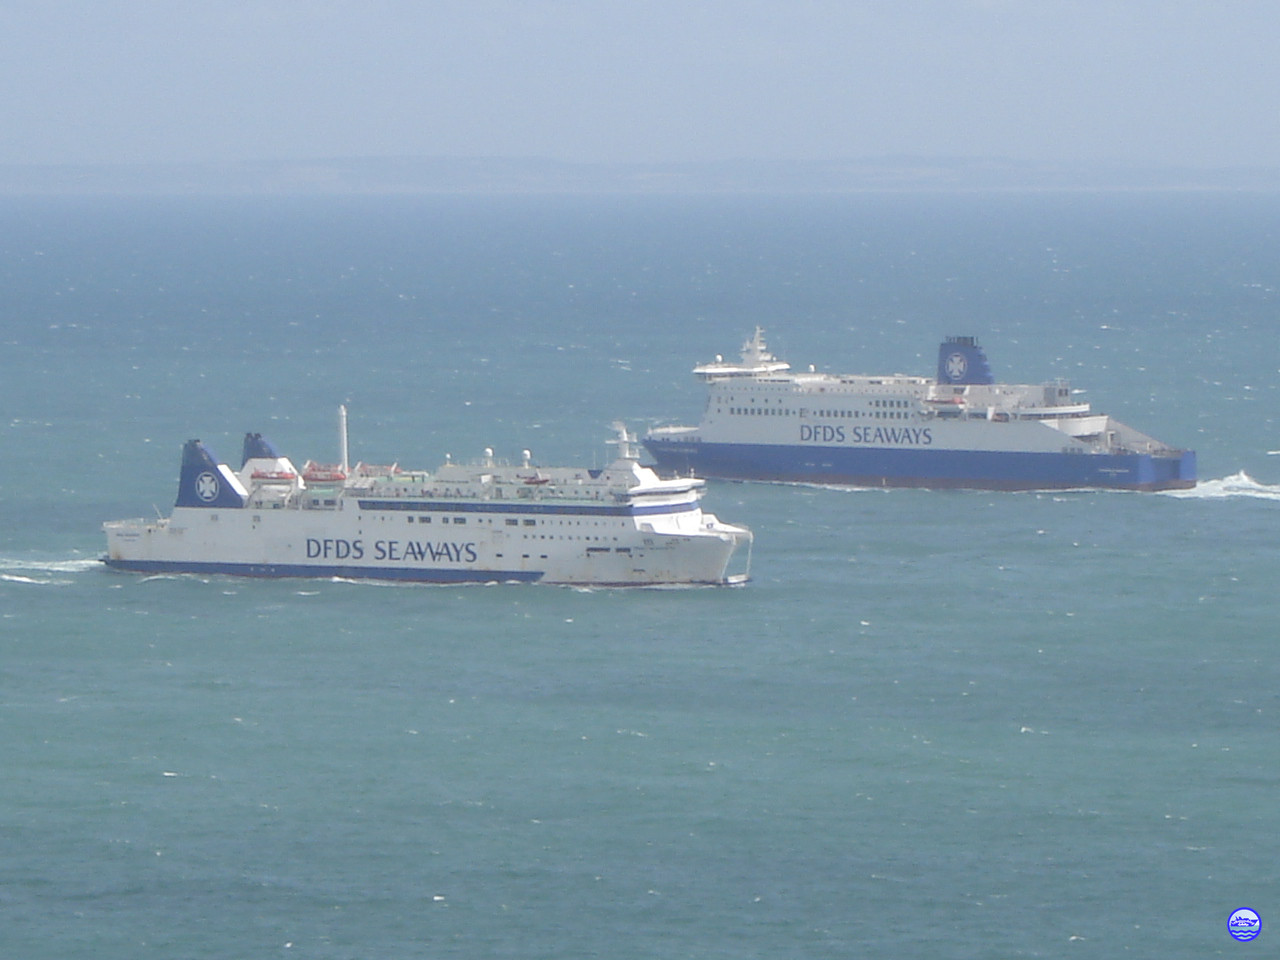 Deal Seaways vs Dunkerque Seaways (© lebateaublog 2012)